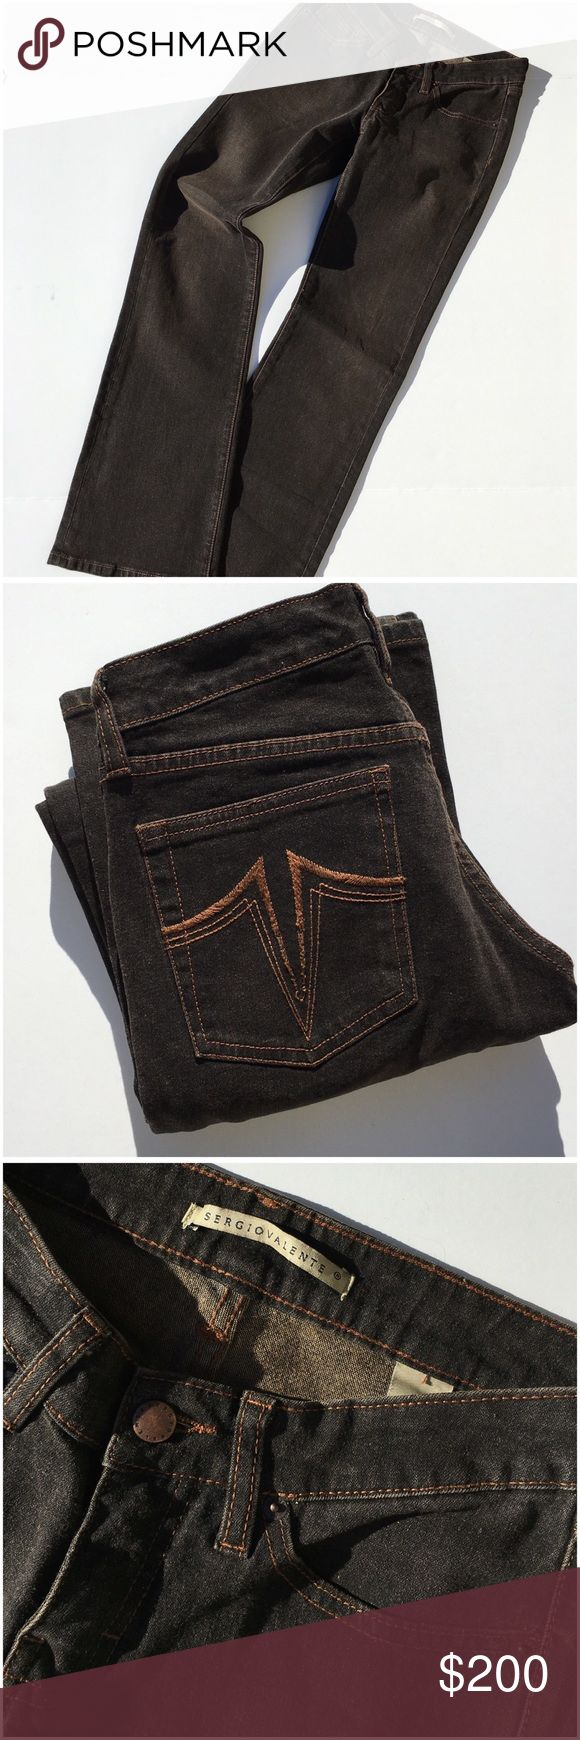 Sergio Valente Jeans Super cool and On Trend right now! Copper wash over black denim, copper stitching, riveted  and five pockets, 99% cotton 1% Lycra,   inseam 32 NWOT (WJ1 Sergio Valente Jeans Boot Cut